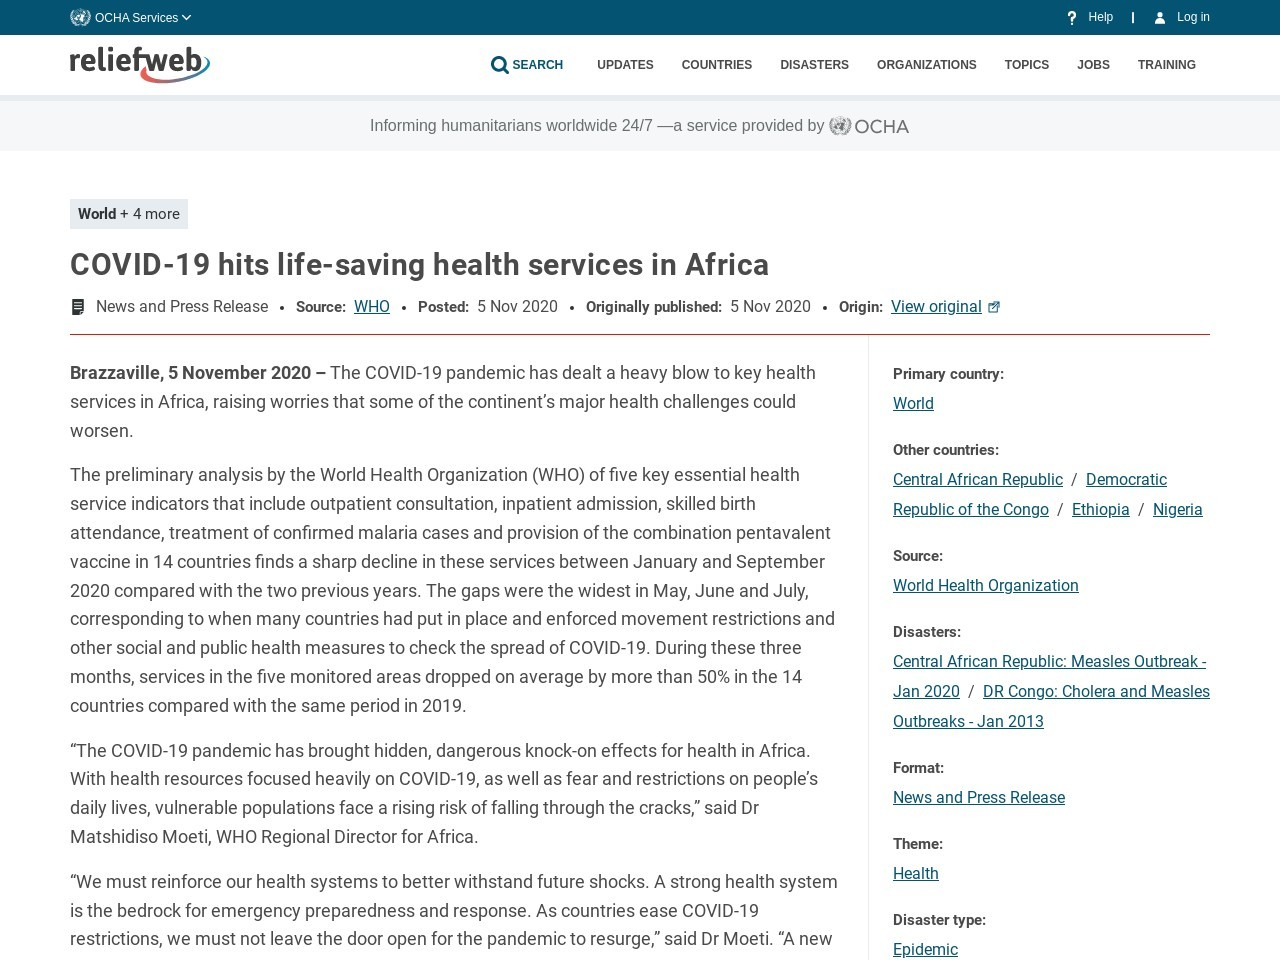 COVID-19 hits life-saving health services in Africa - World